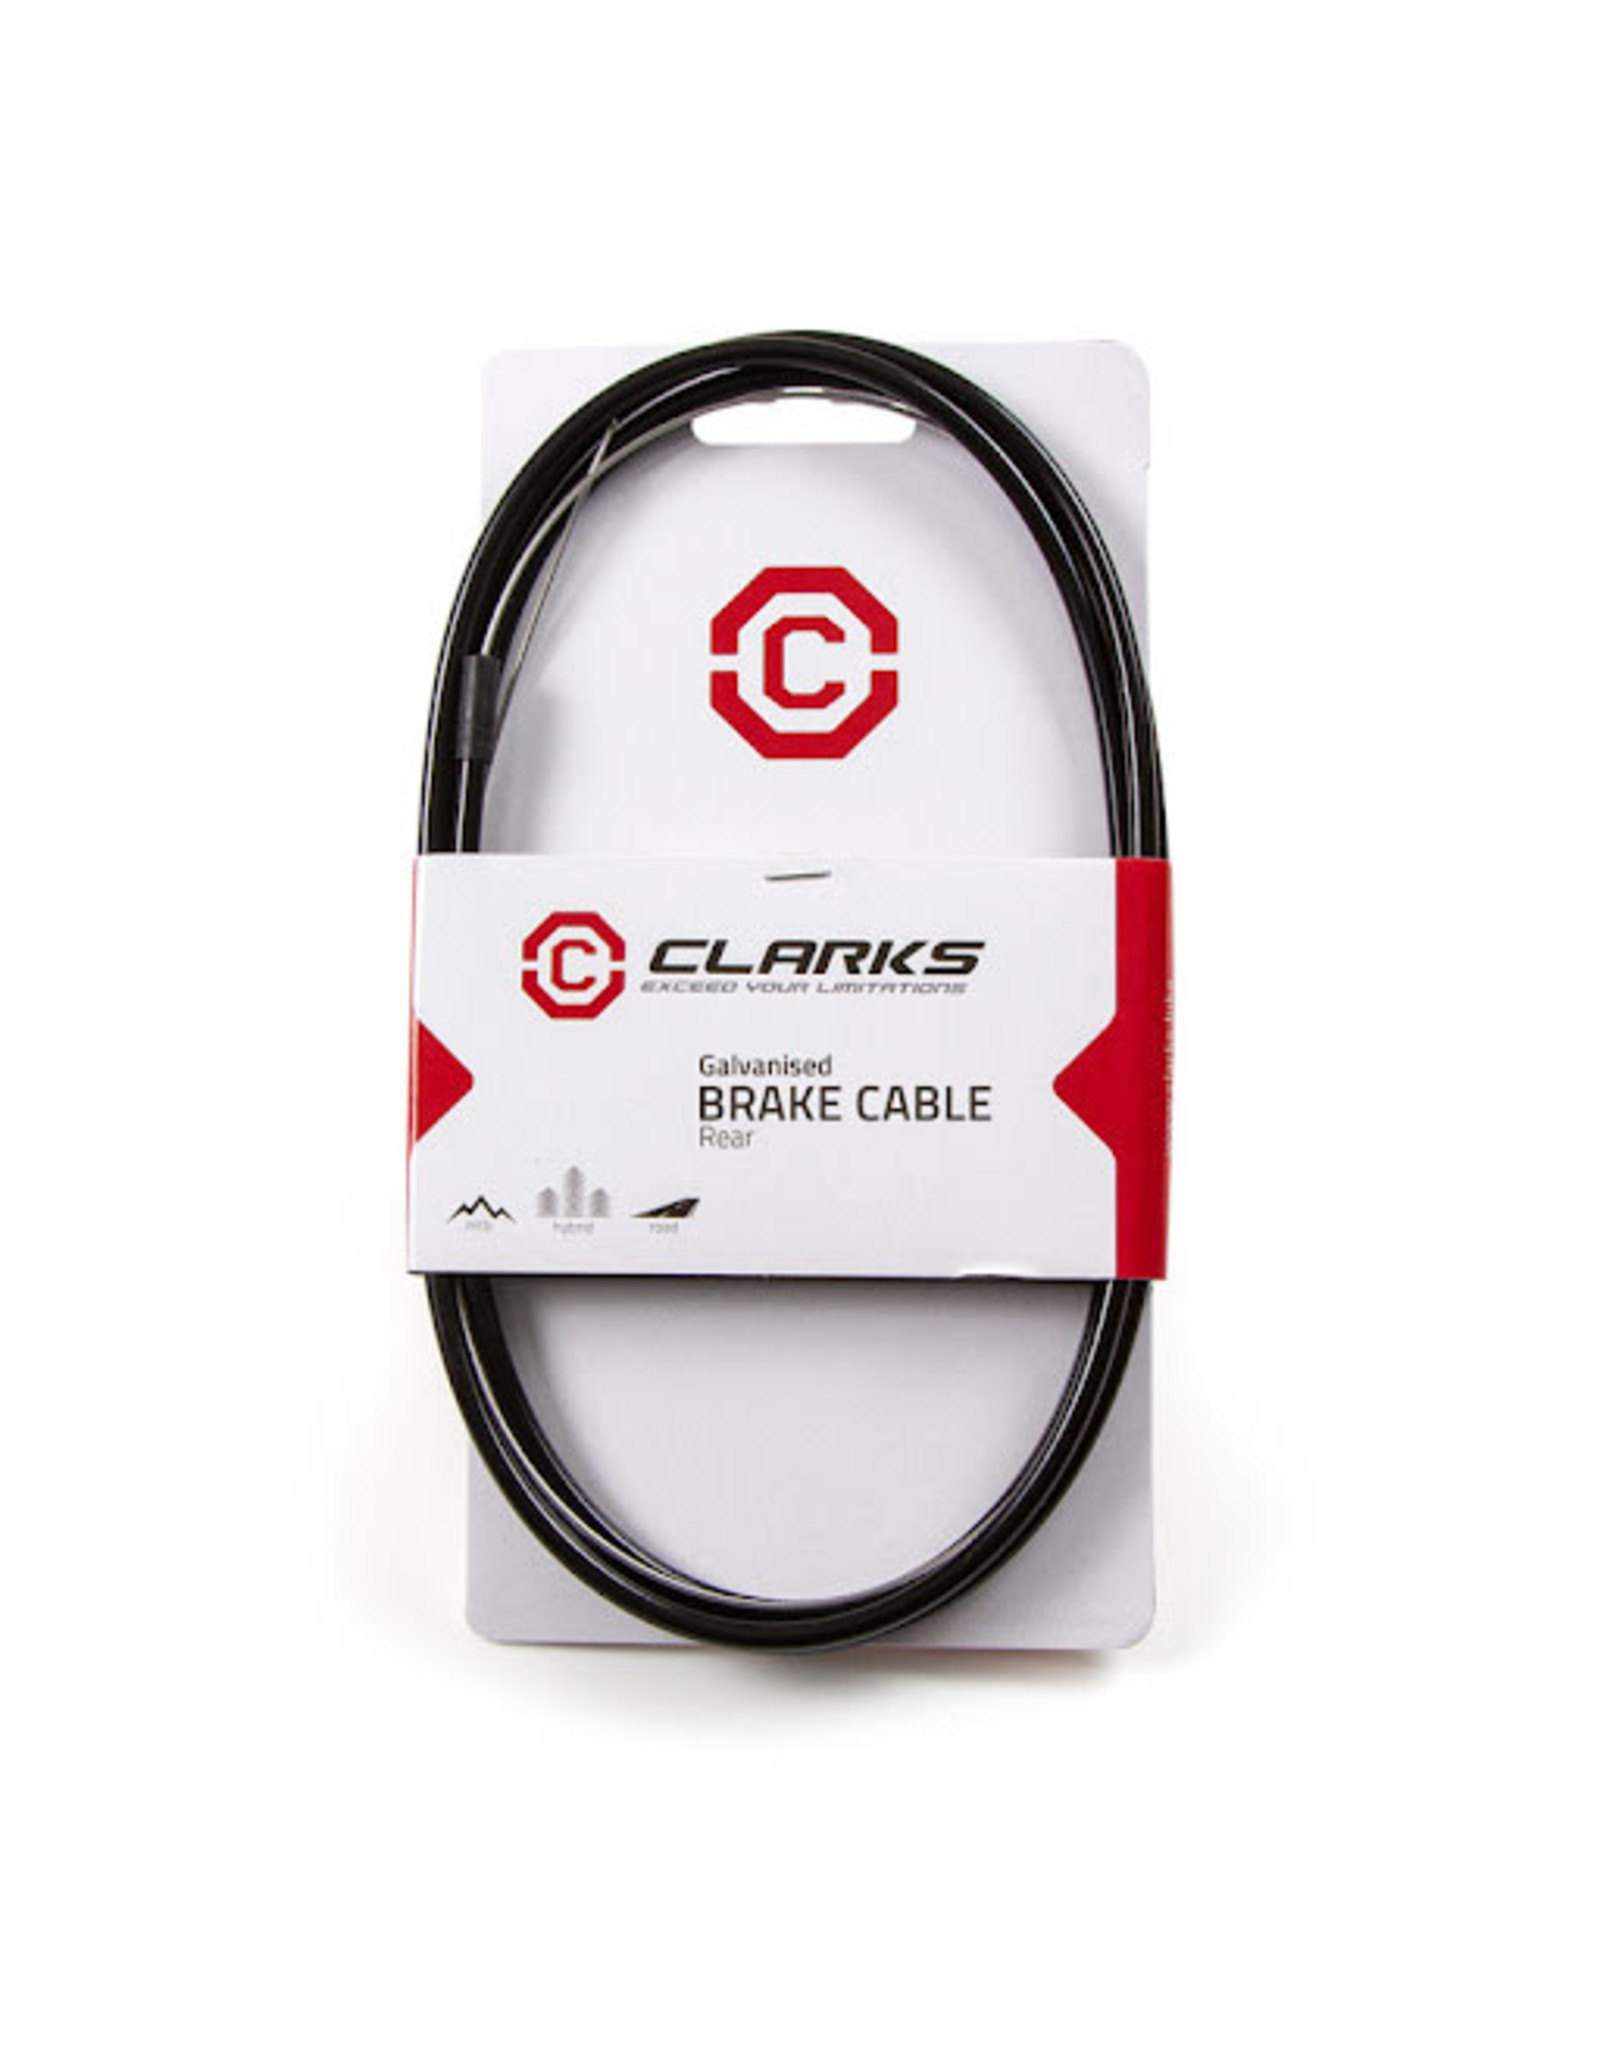 CLARKS Bicycle Brake Cable Set Stainless Steel